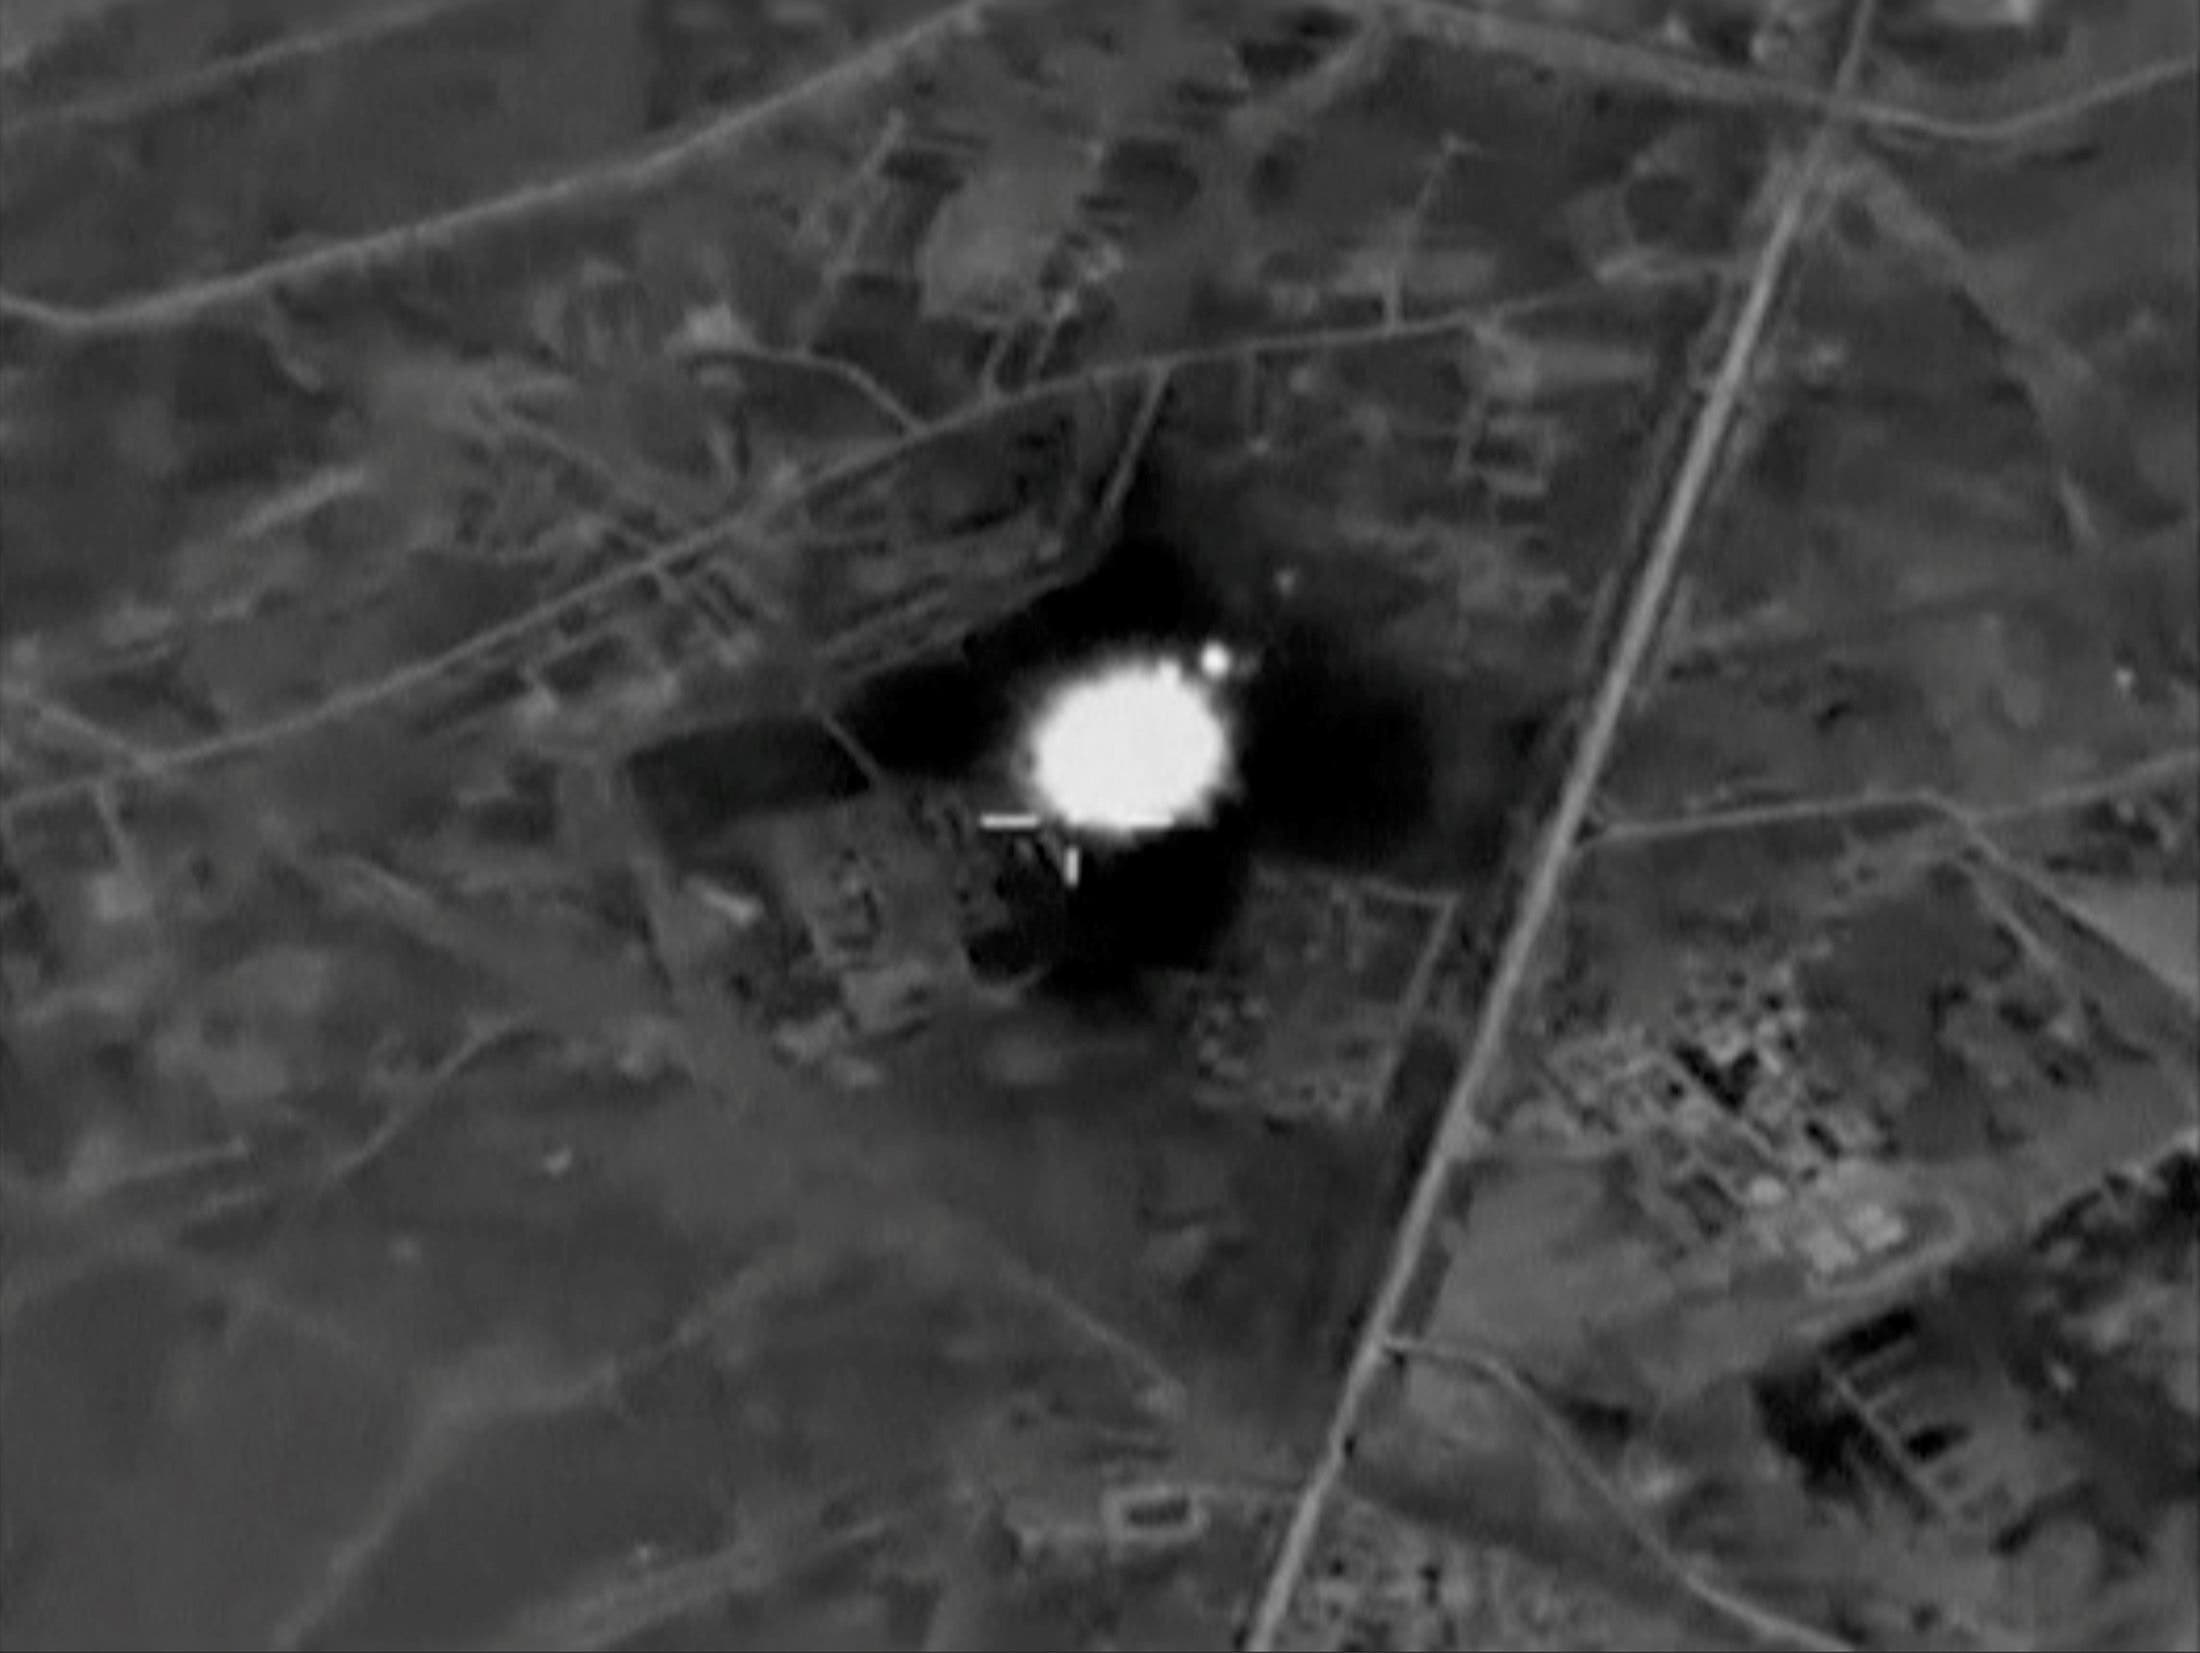 A still image, taken from video footage and released by Russia's Defence Ministry on August 11, 2016, shows airstrikes carried out by Russian Tupolev Tu-22M3 long-range strategic bombers and hitting infrastructure controlled by the Islamic State militants according to the ministry, at an unknown location in Syria. (Reuters)